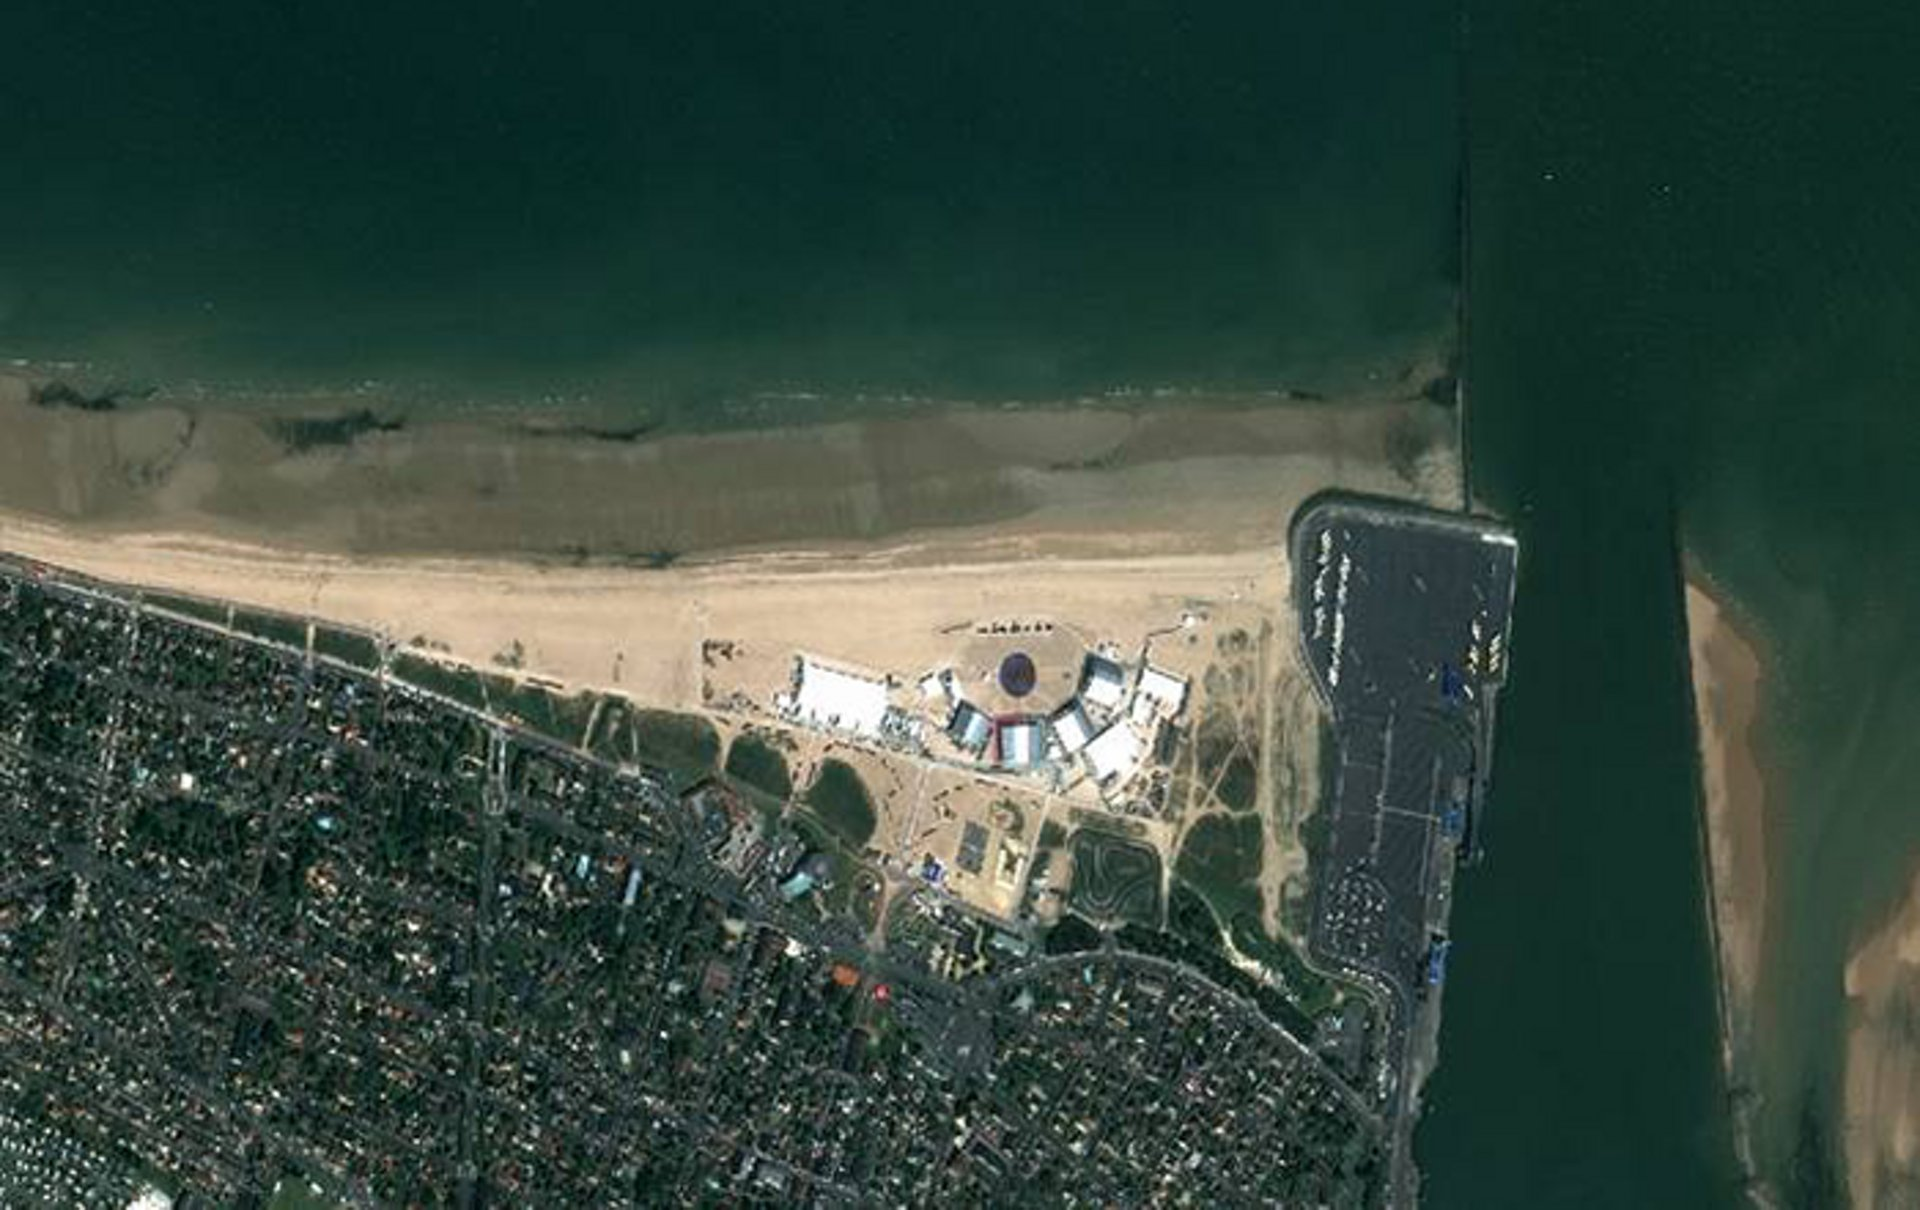 Satellite image of Normandy beach